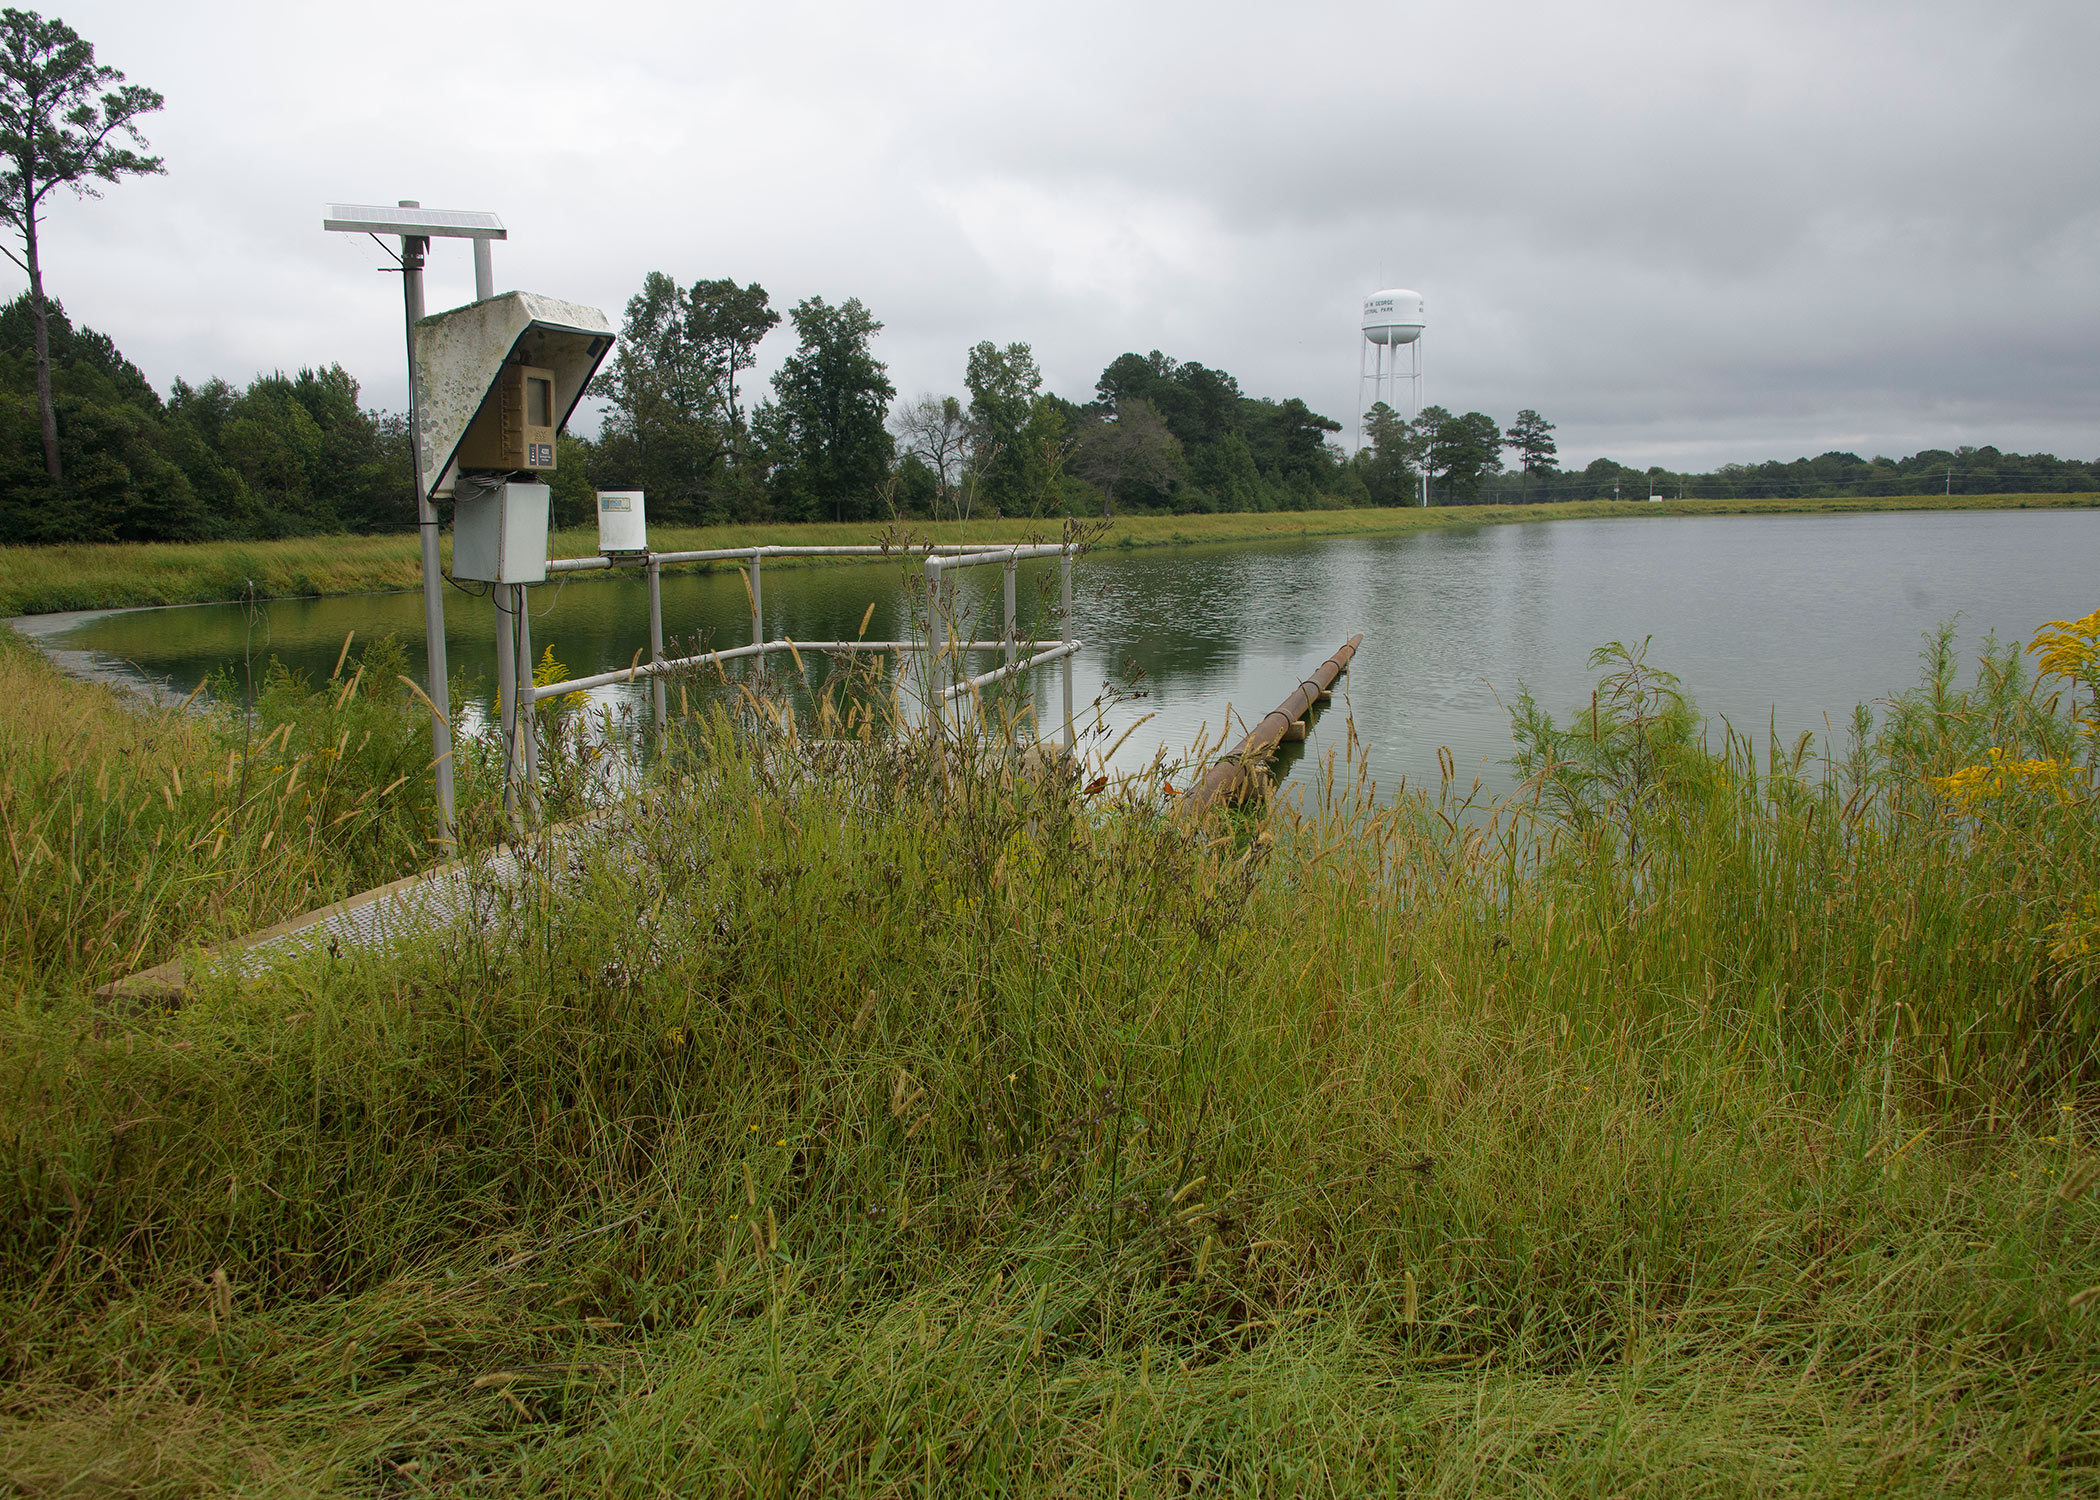 A metal structure stands in tall, green grass on the edge of a pond, where a large pipe reaches into the water from the metal structure.